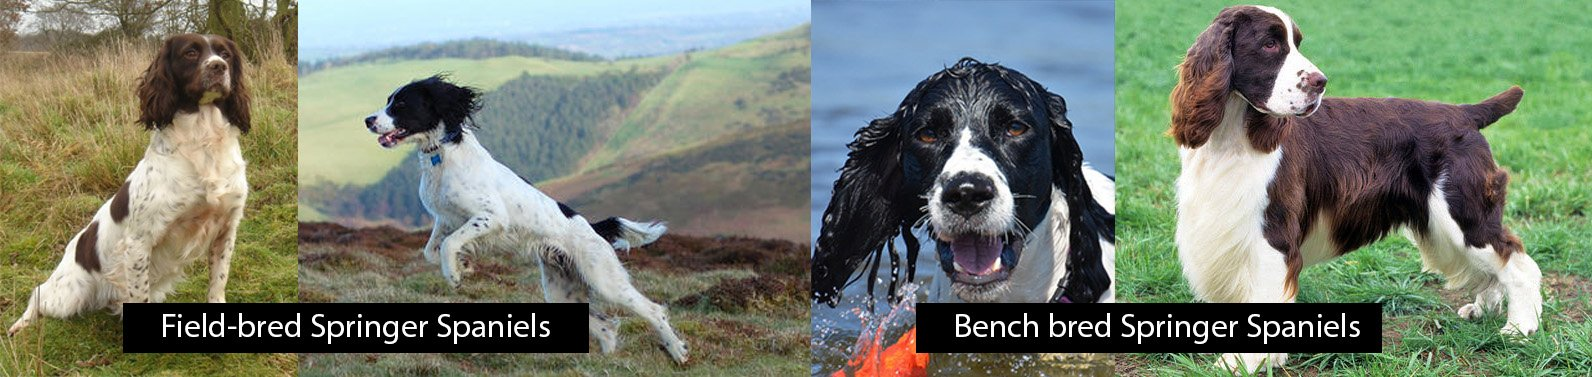 Difference between Field and Bench bred Springer Spaniels